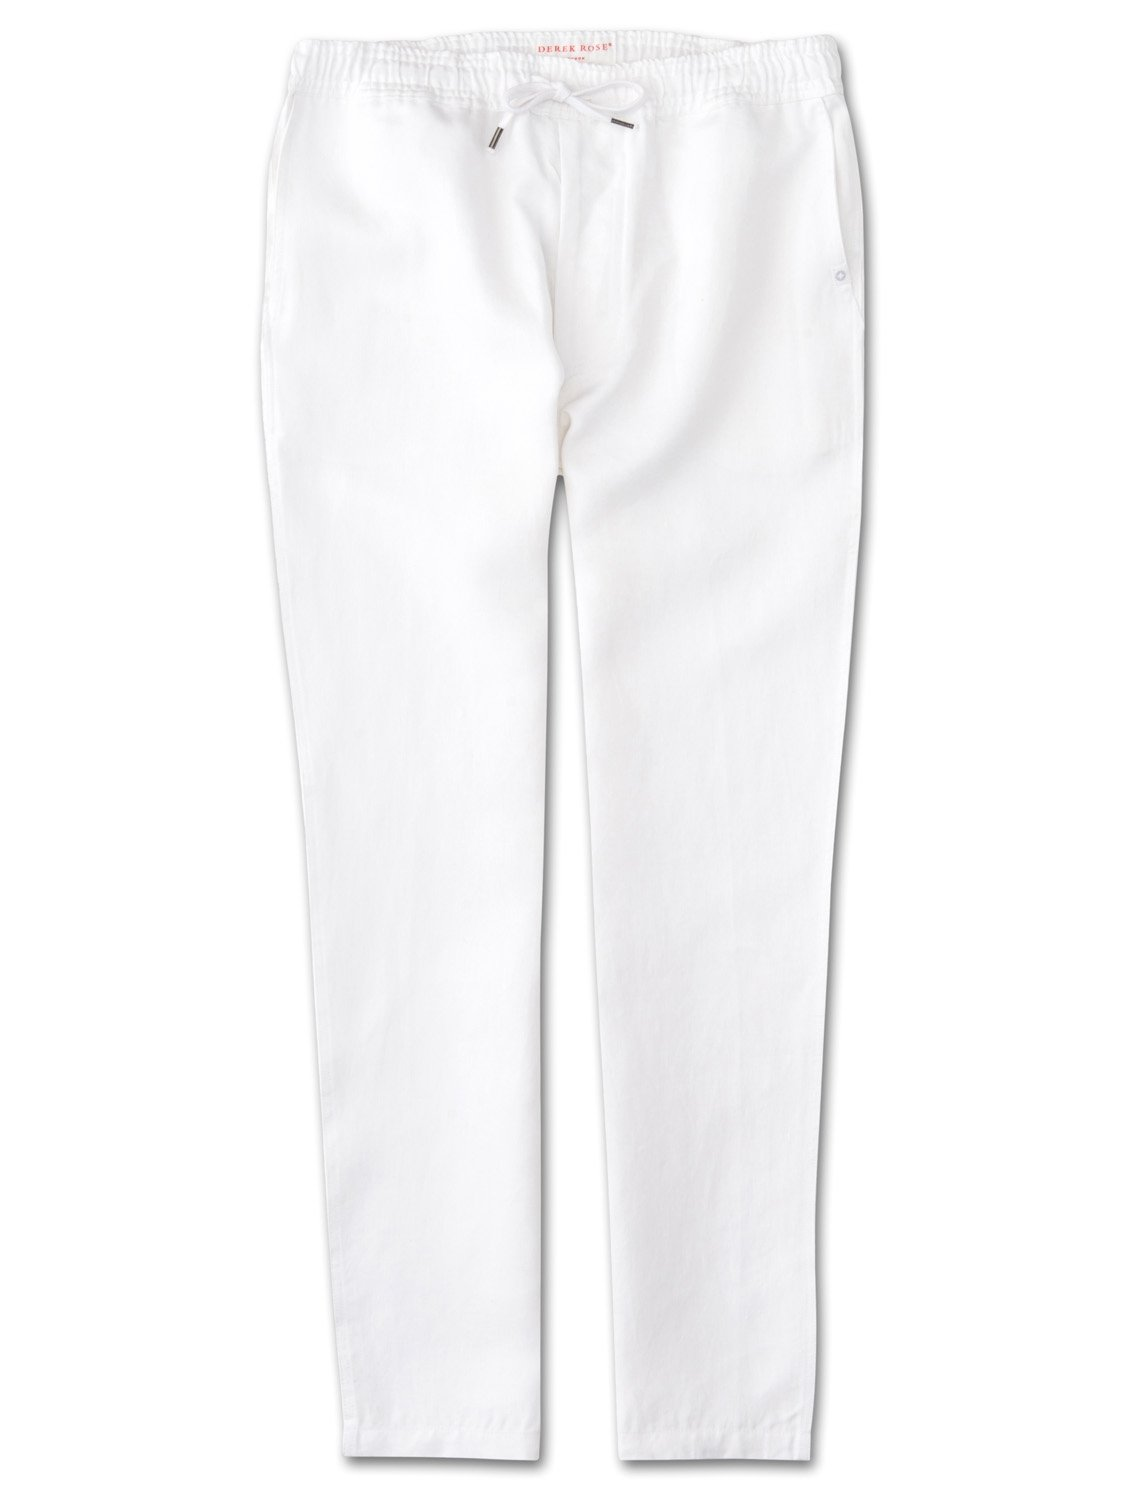 Derek Rose Men's Linen Trousers — Sydney Linen White